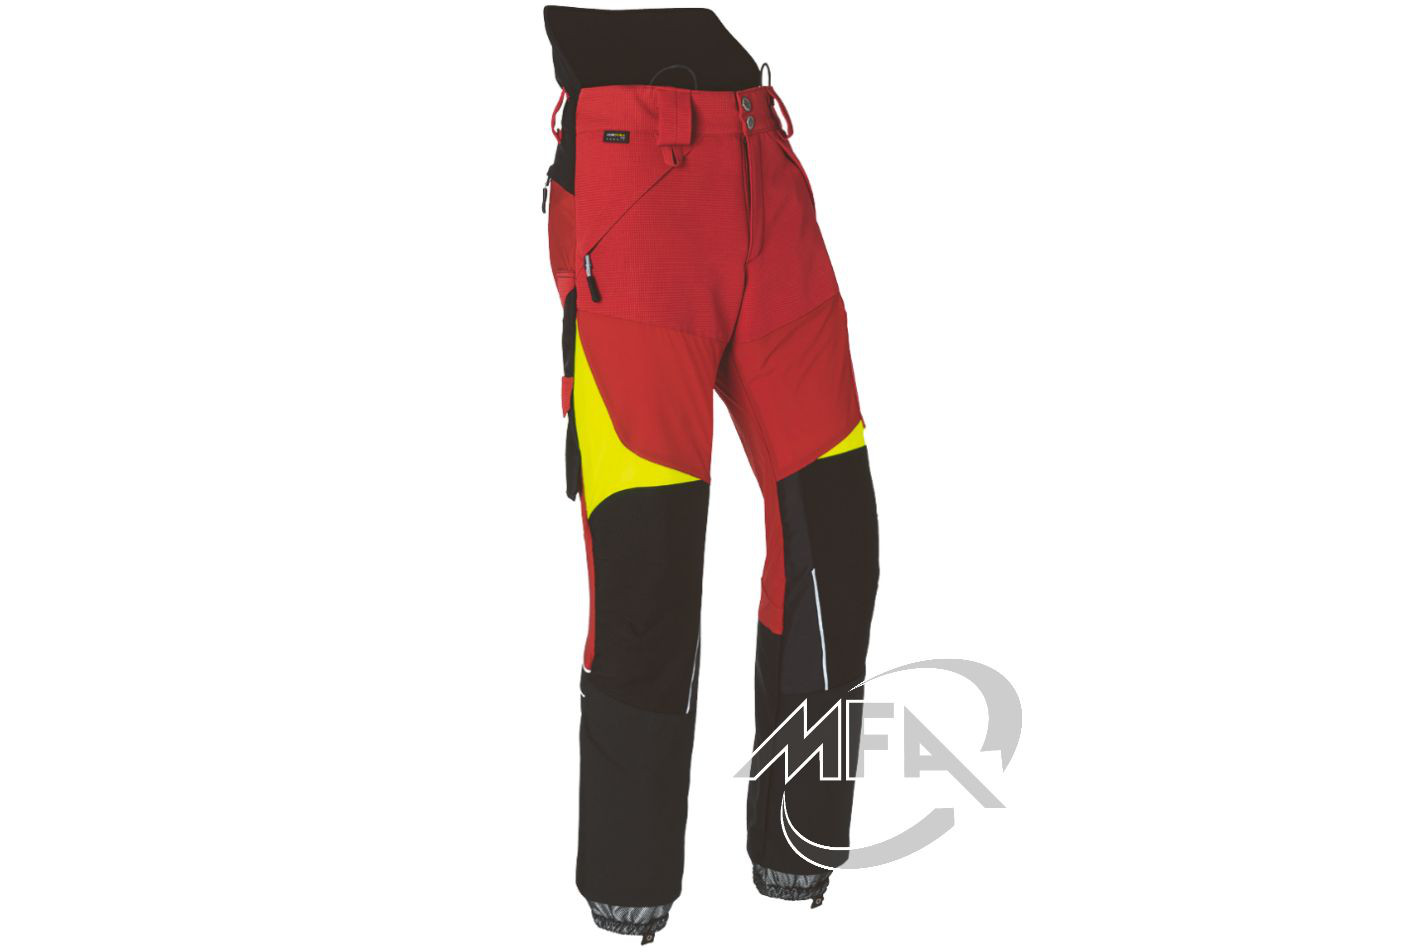 Pantalon anti coupure Forest Kübler PRO ventilé